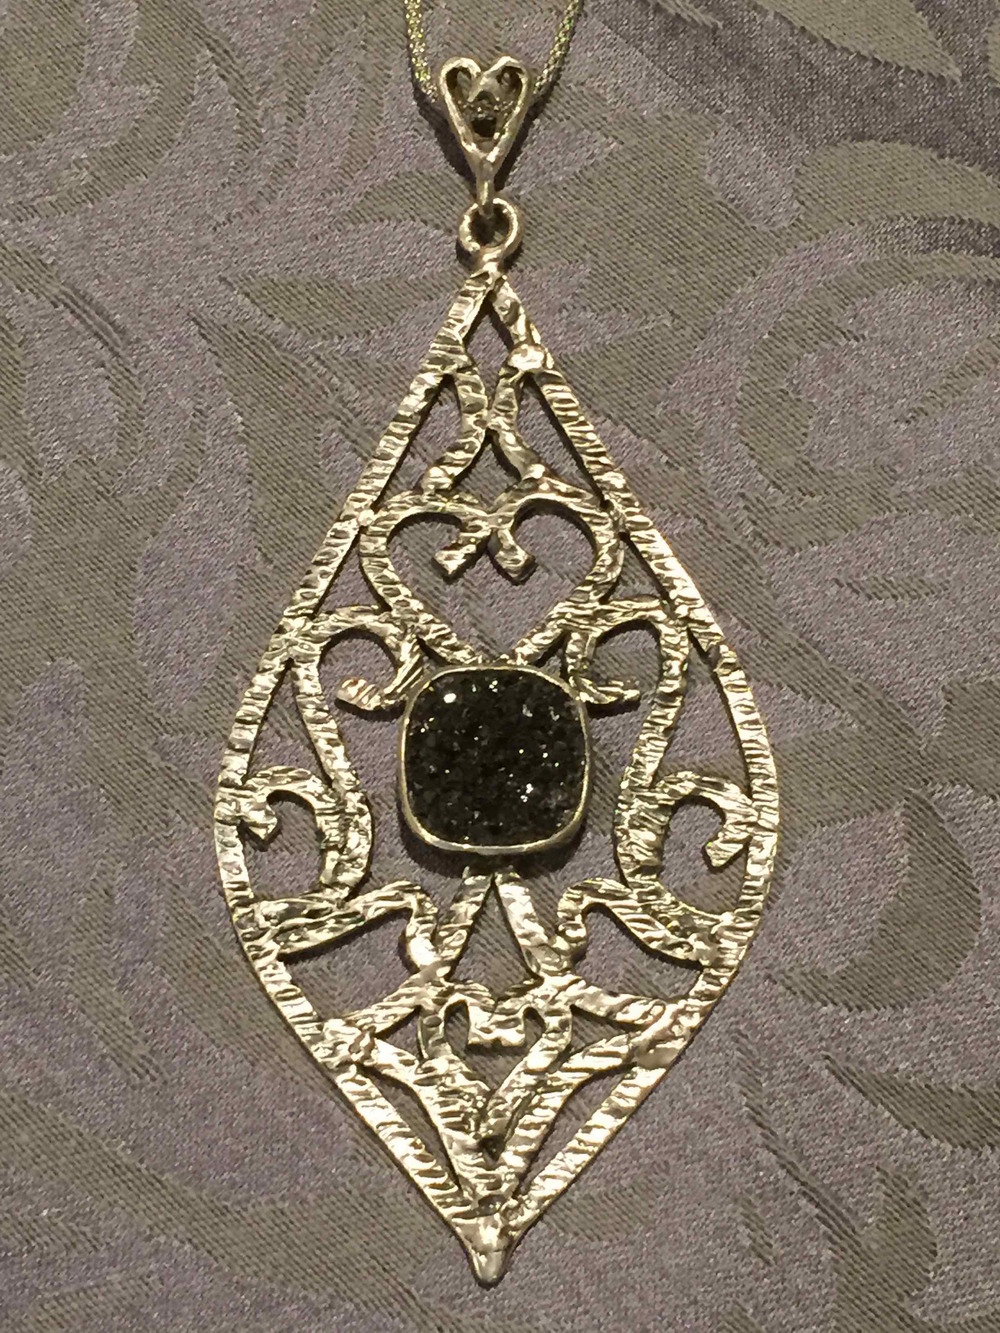 Beth Benowich - Unique Handcrafted Jewelry